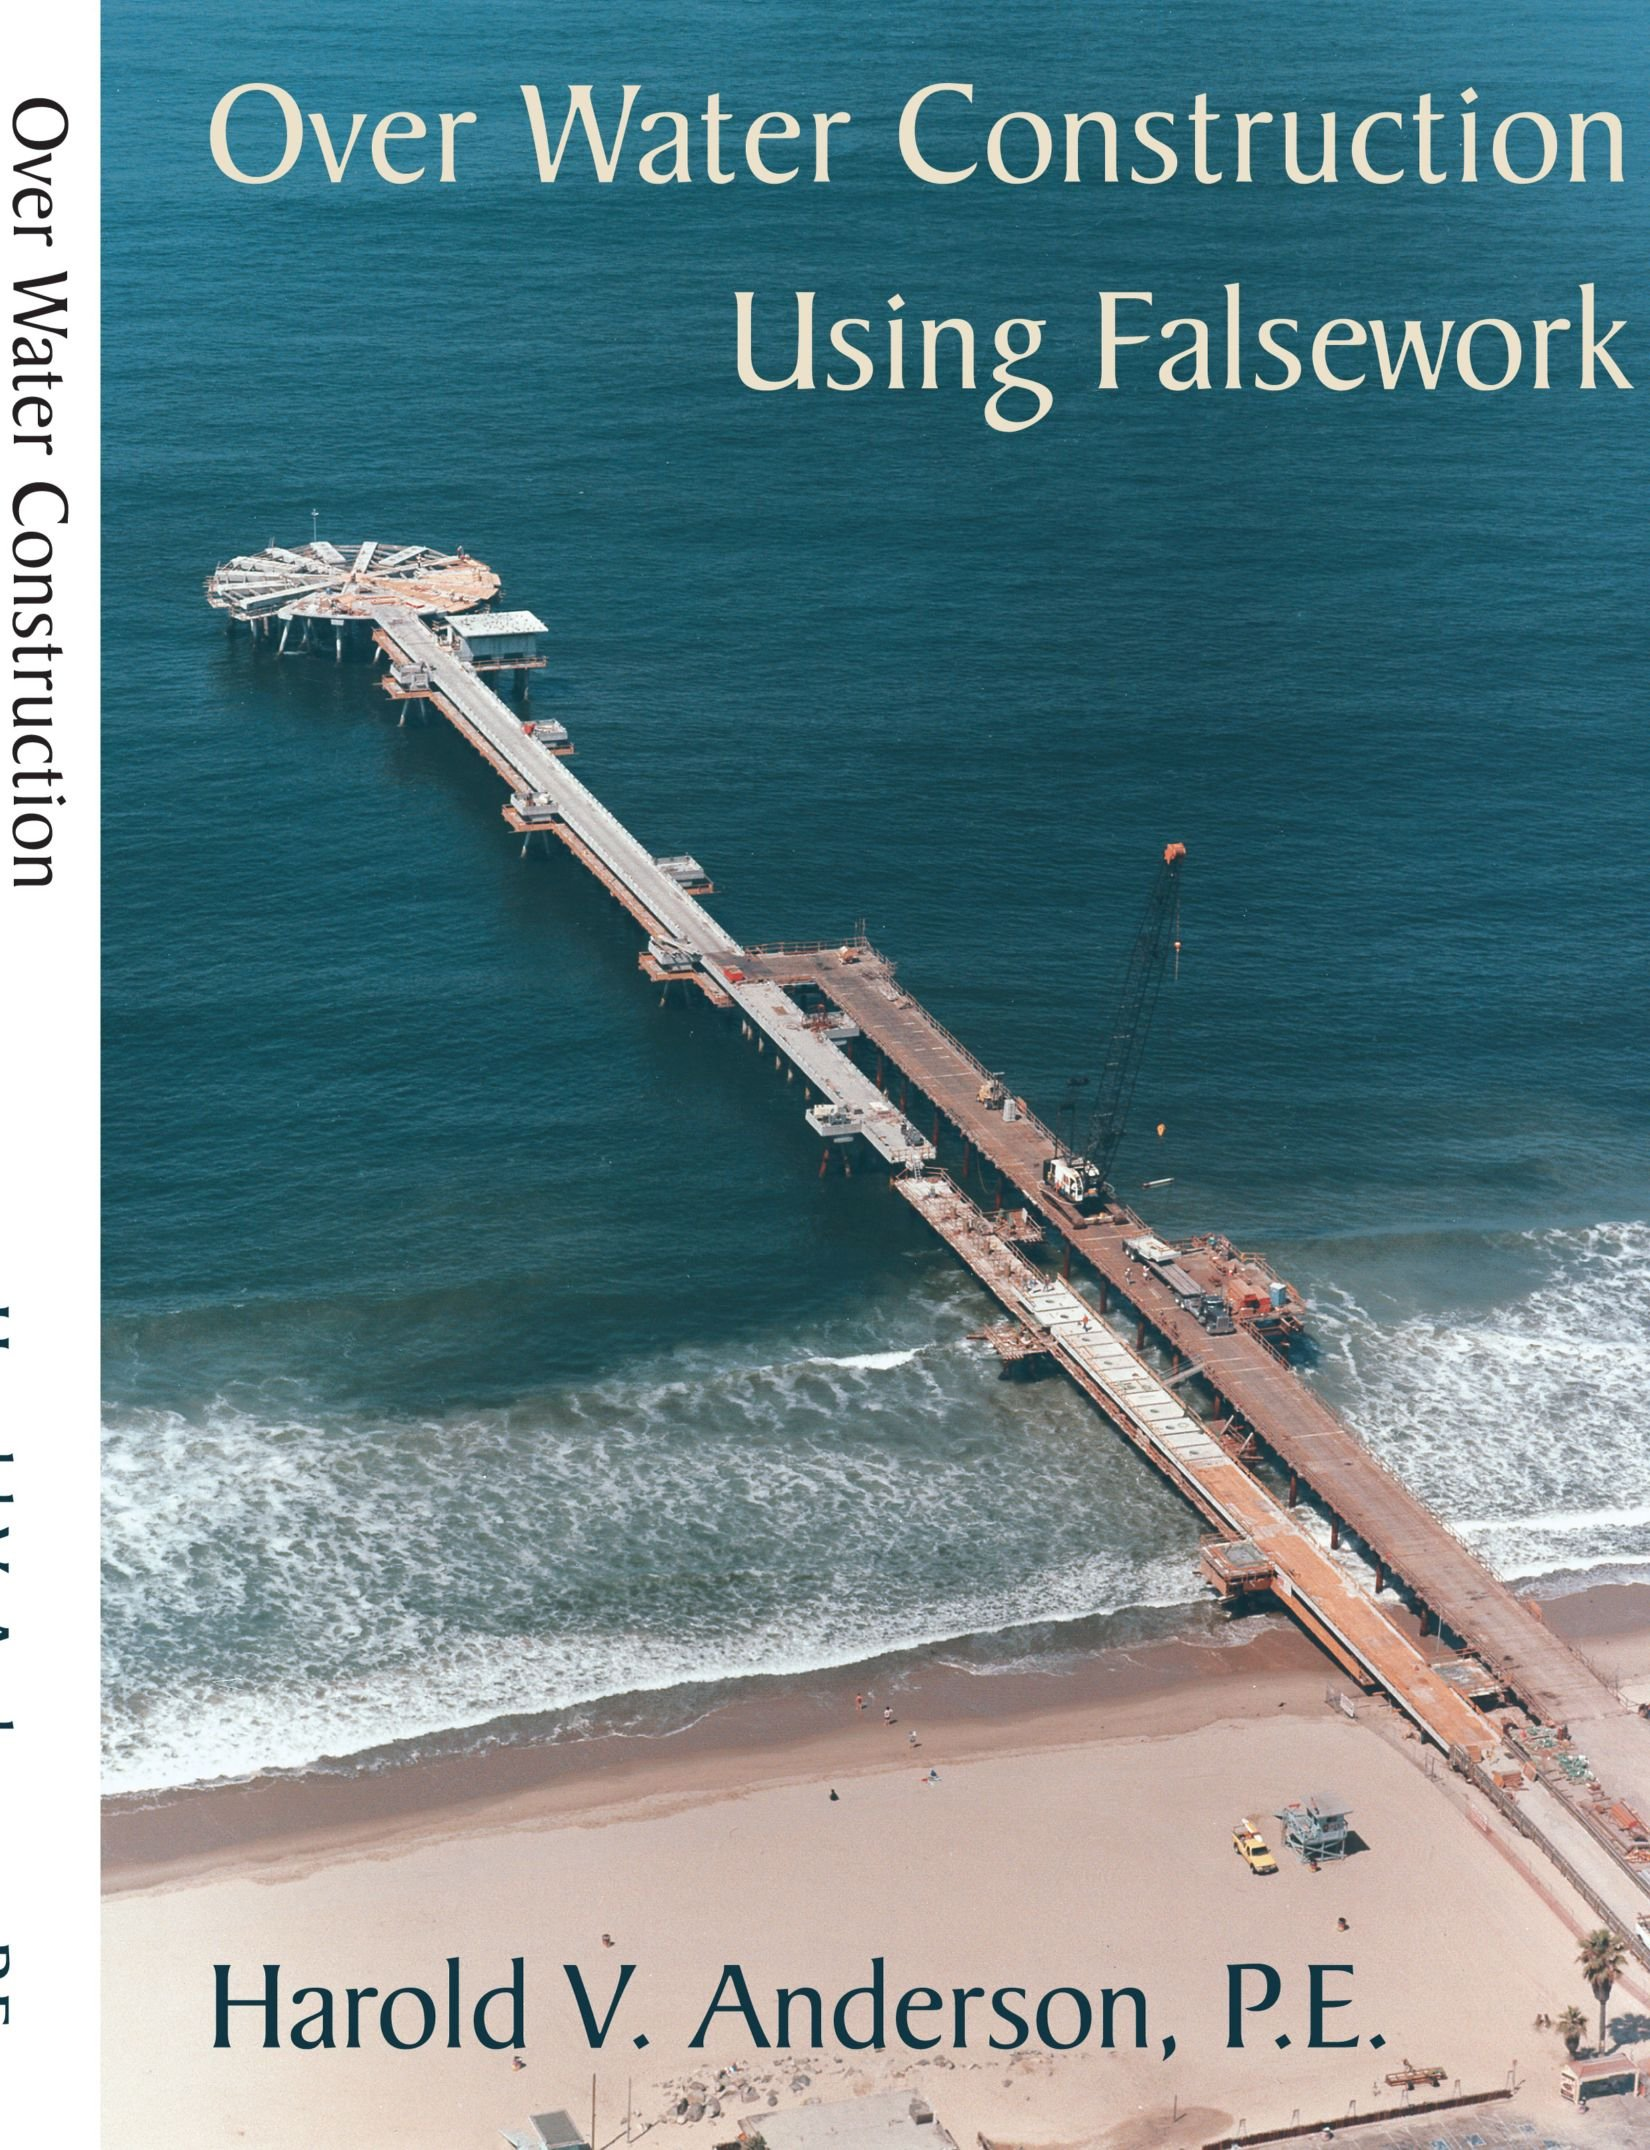 Over Water Construction Using Falsework